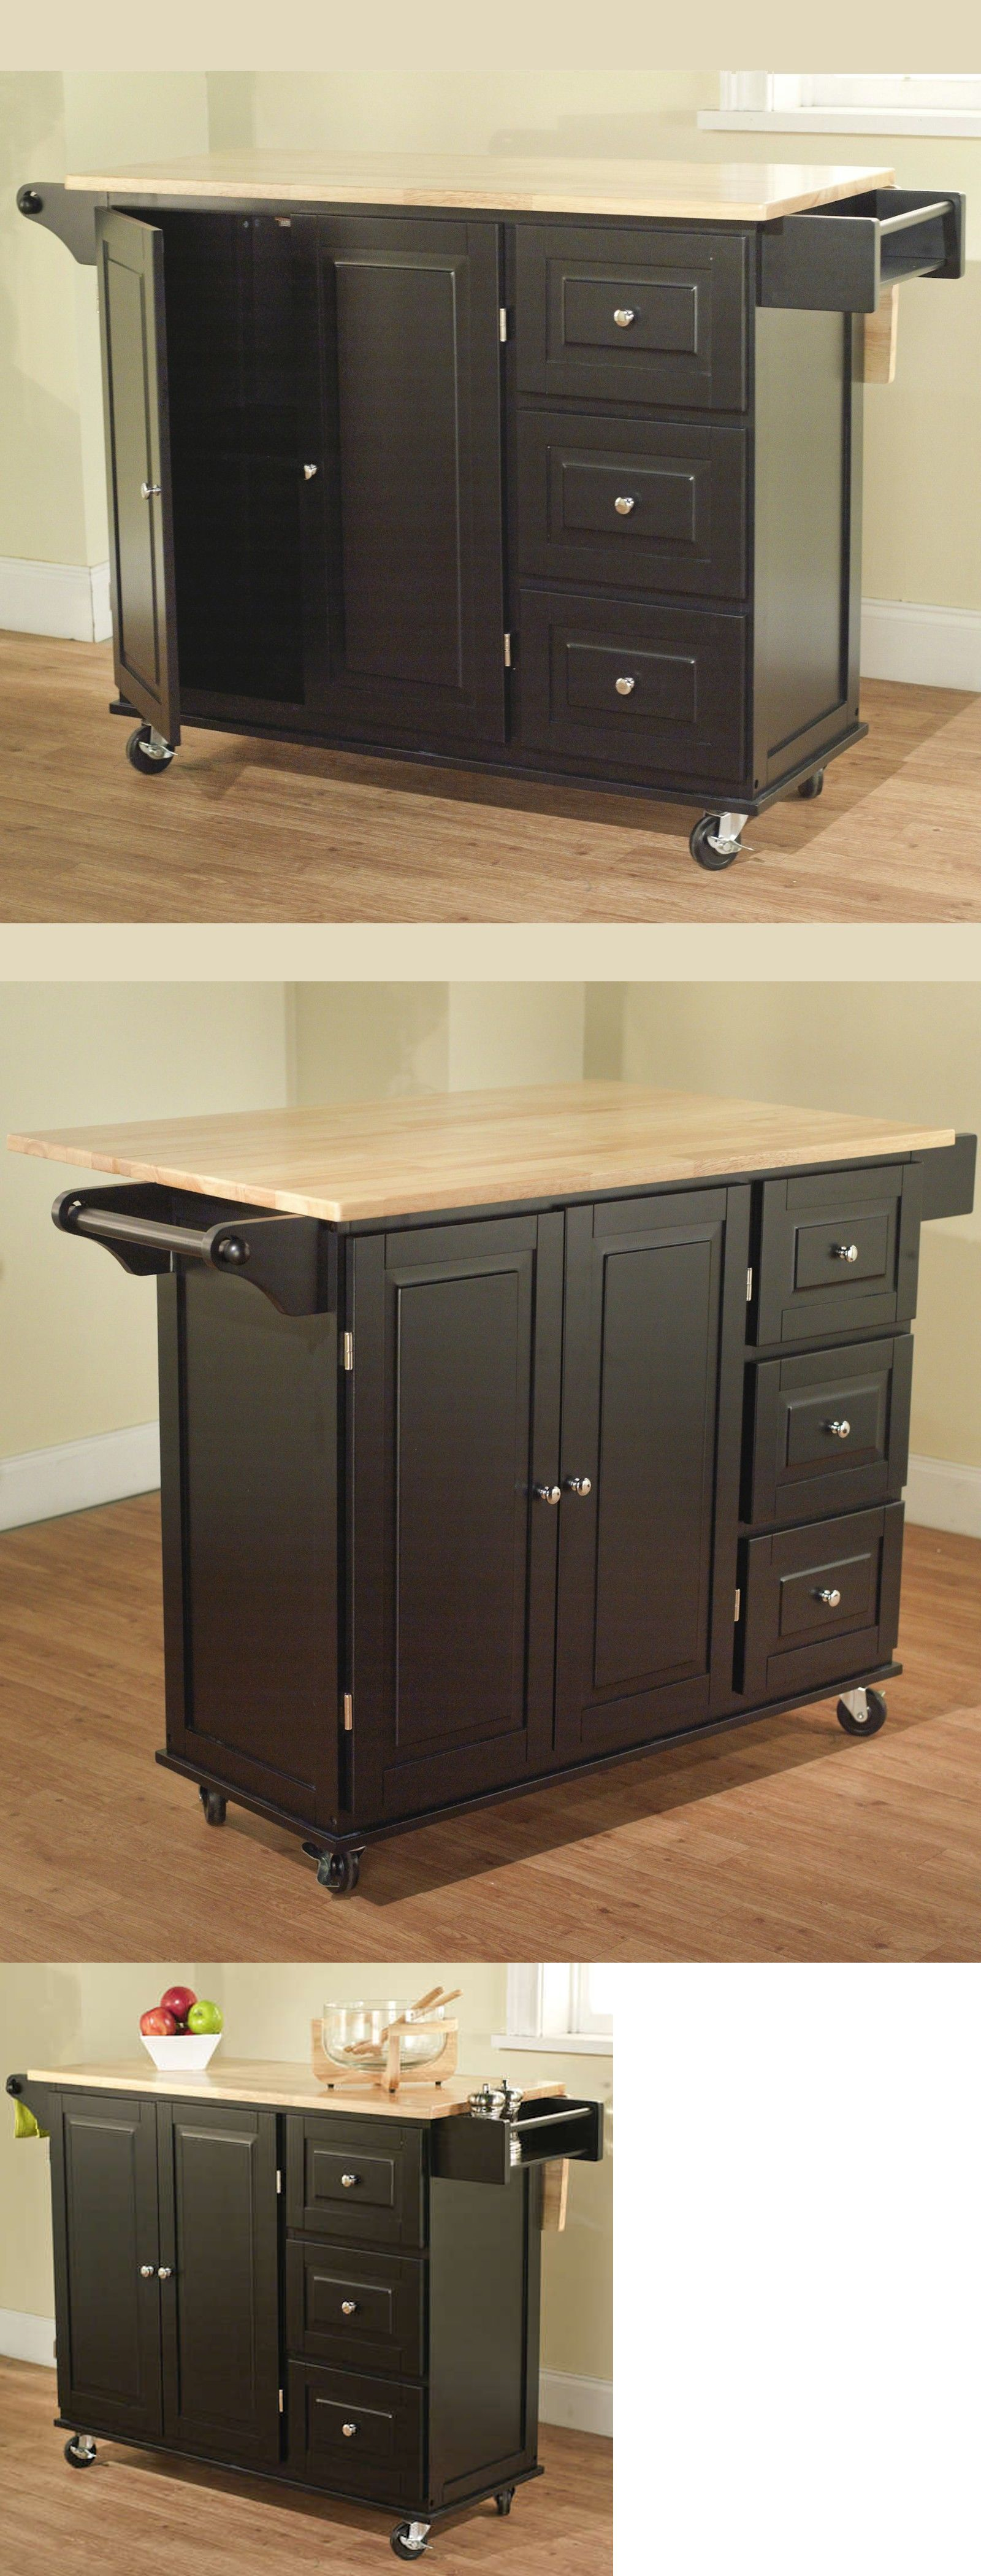 kitchen islands kitchen carts kitchen cabinet cart with